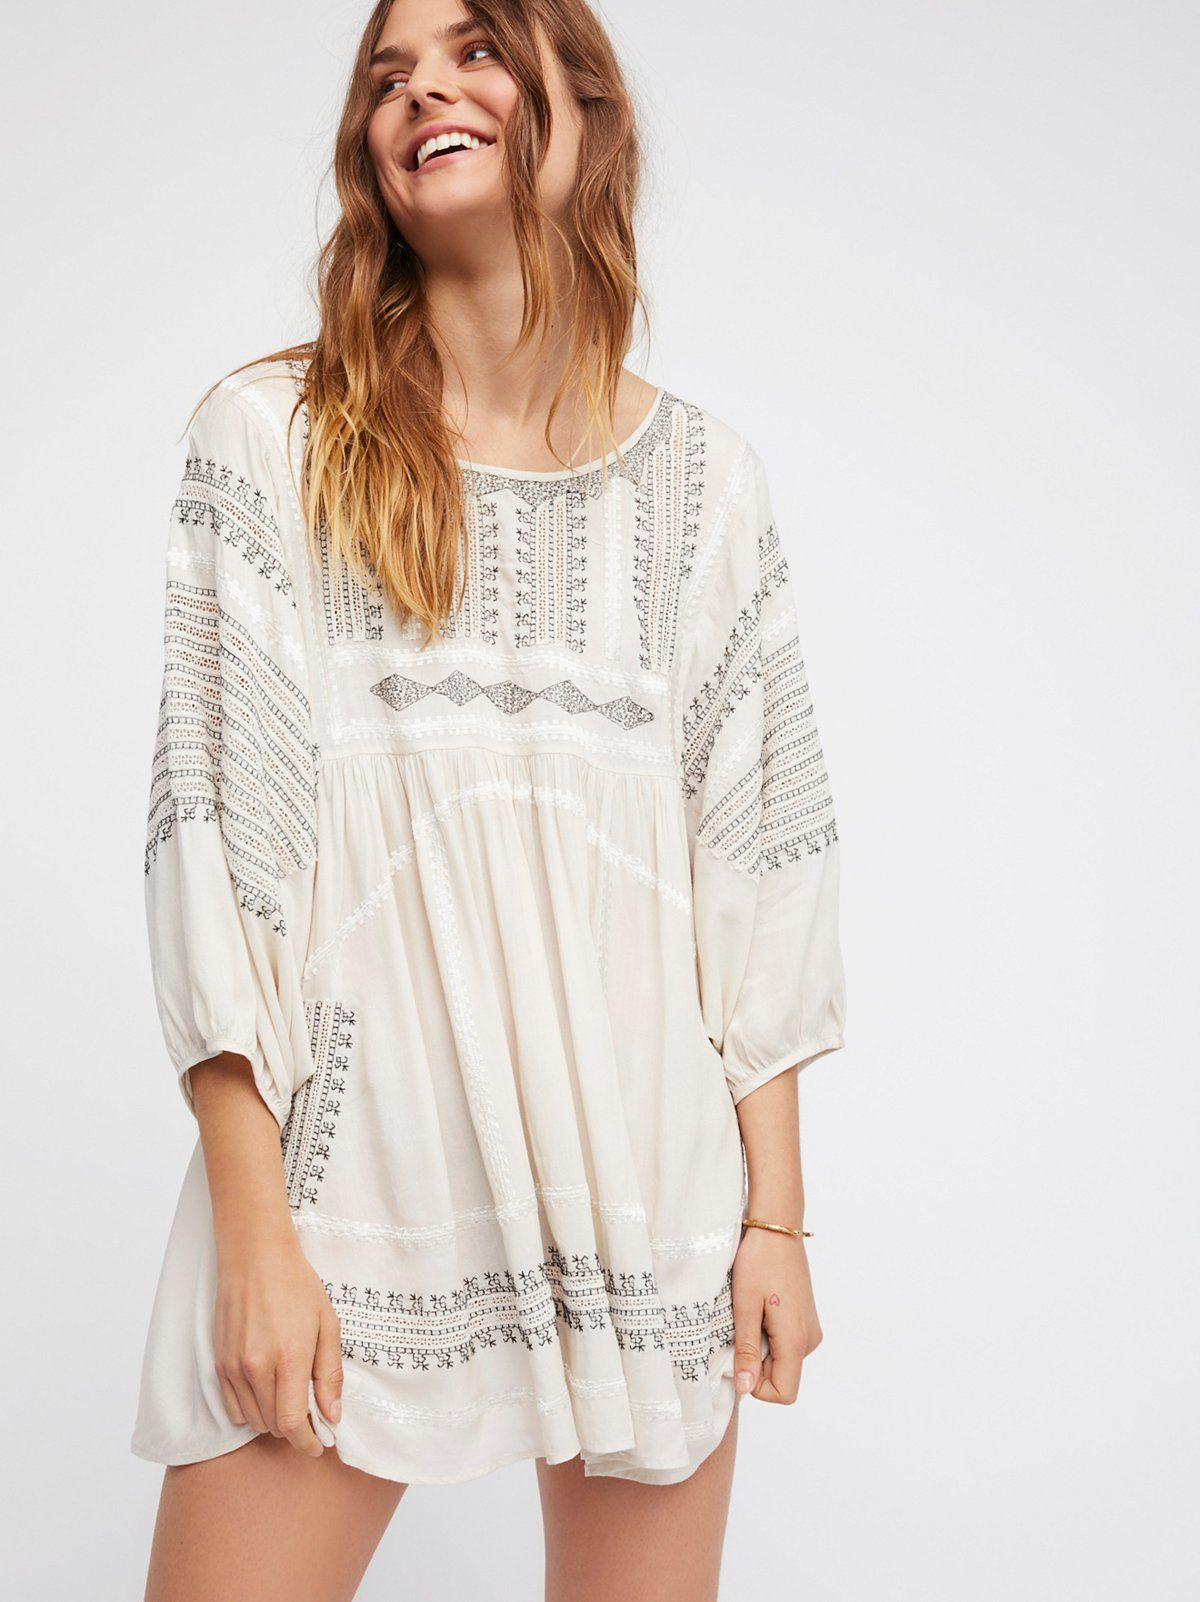 a8725574792 Wild One Embroidered Top | Lightweight and semi-sheer top featuring allover  contrast and tonal embroidery detailing. * Oversized fit * Wide dolman  style ...